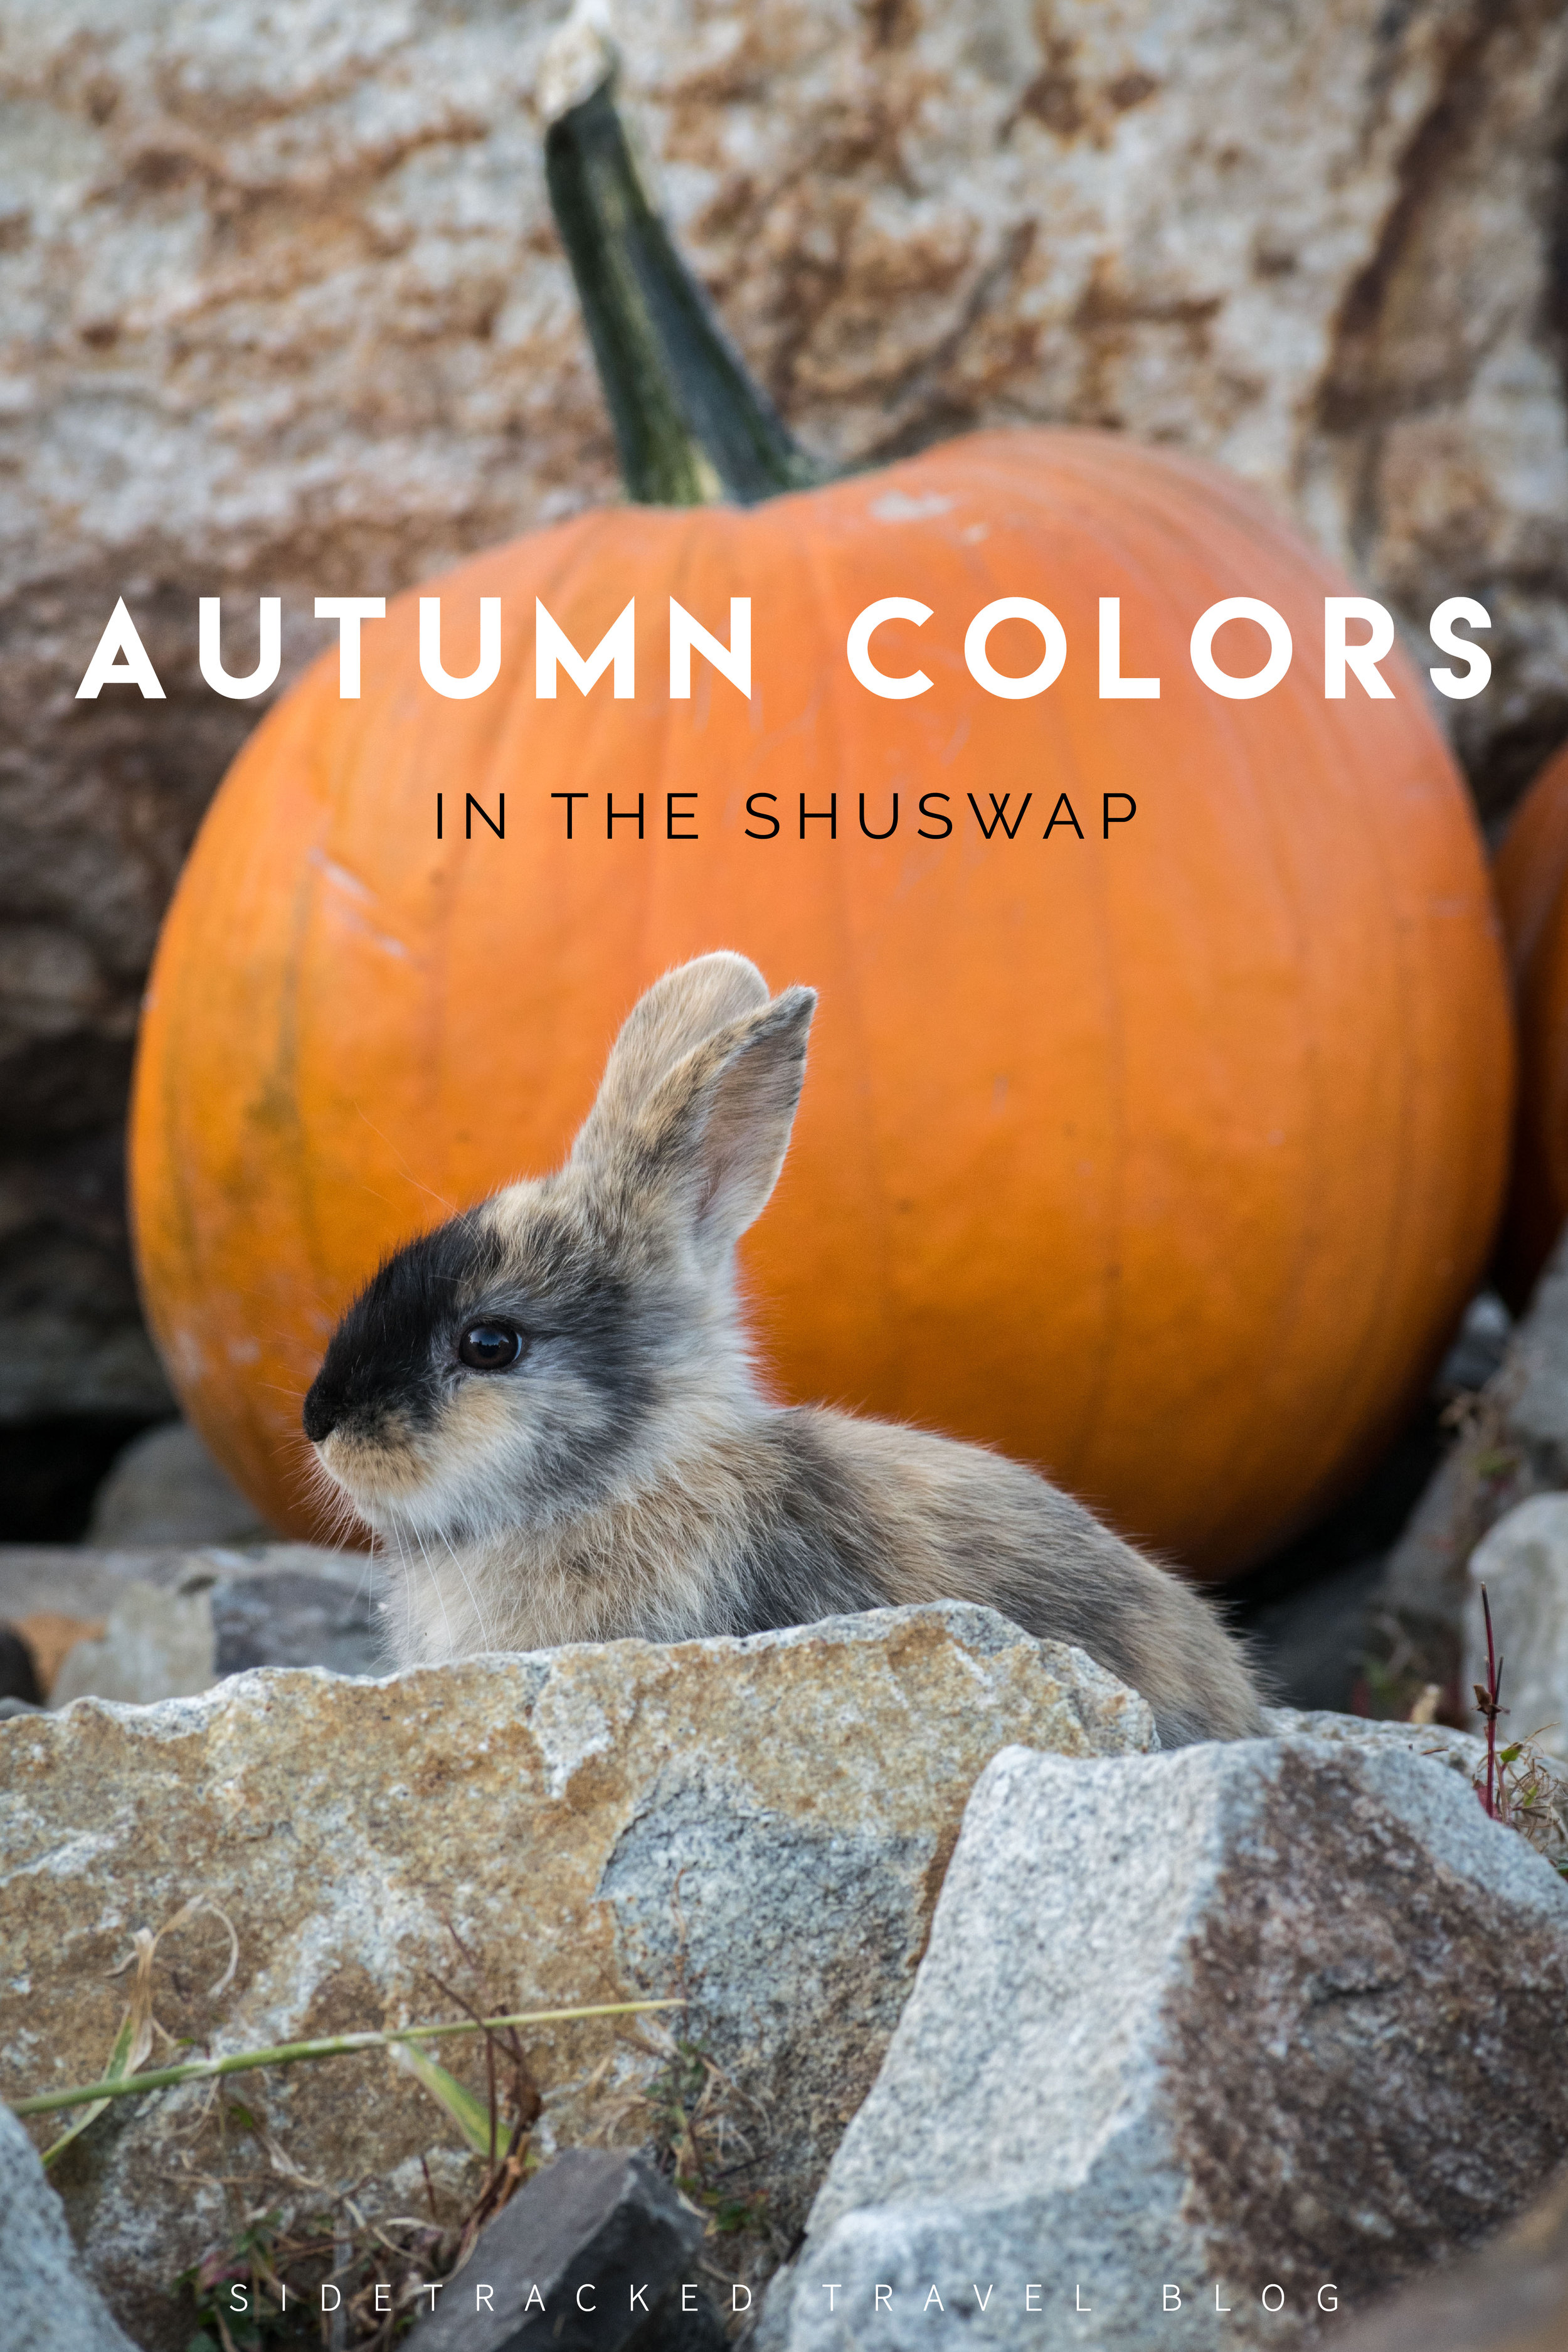 To give you an idea of just how lovely the Shuswap region in British Columbia is, here are some of my favorite photos from a recent fall day trip.